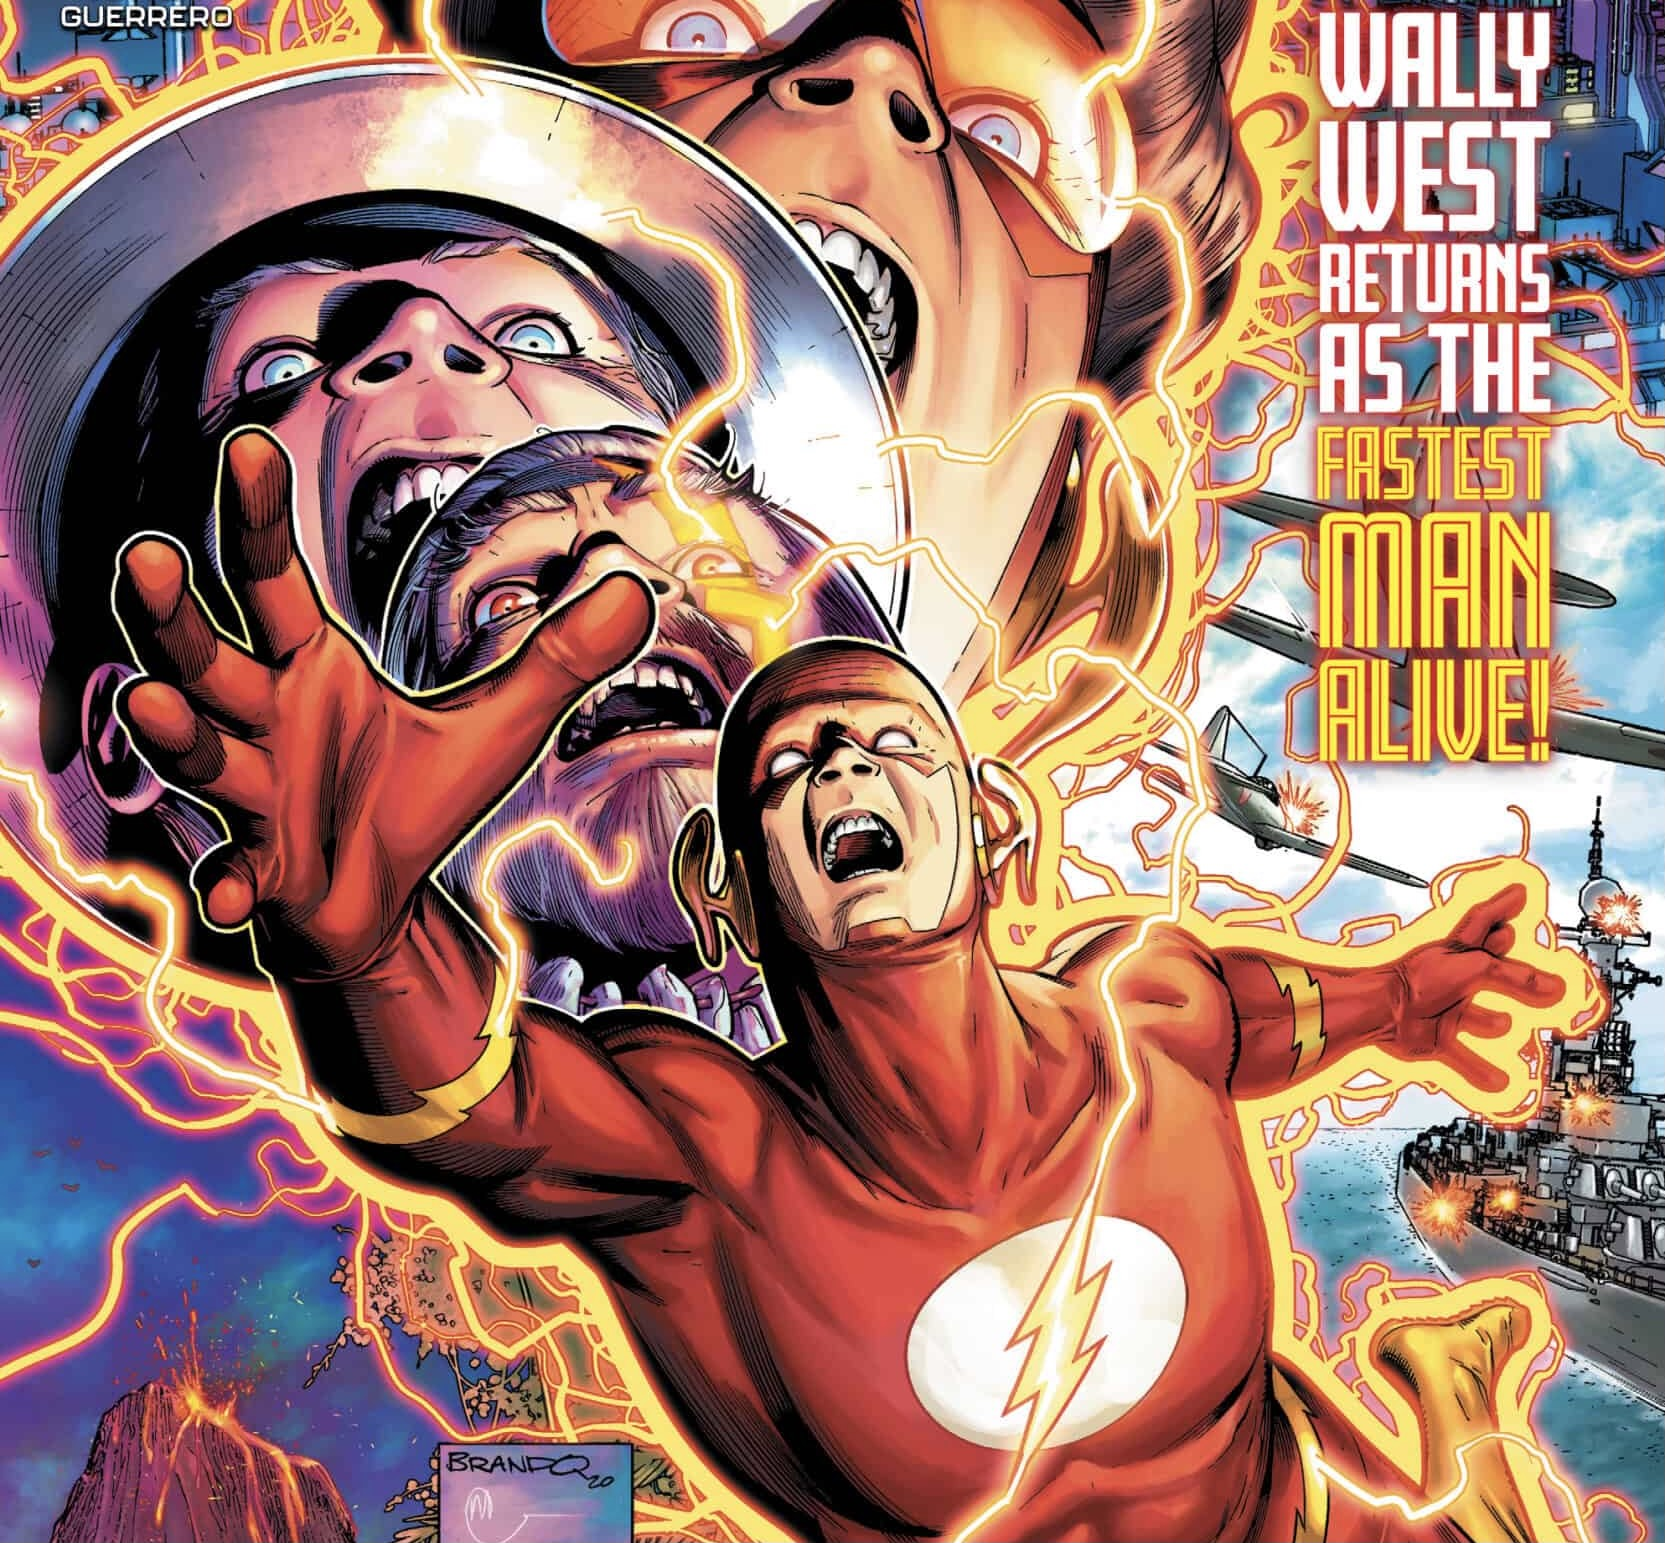 The Flash #768 cover by Brandon Peterson